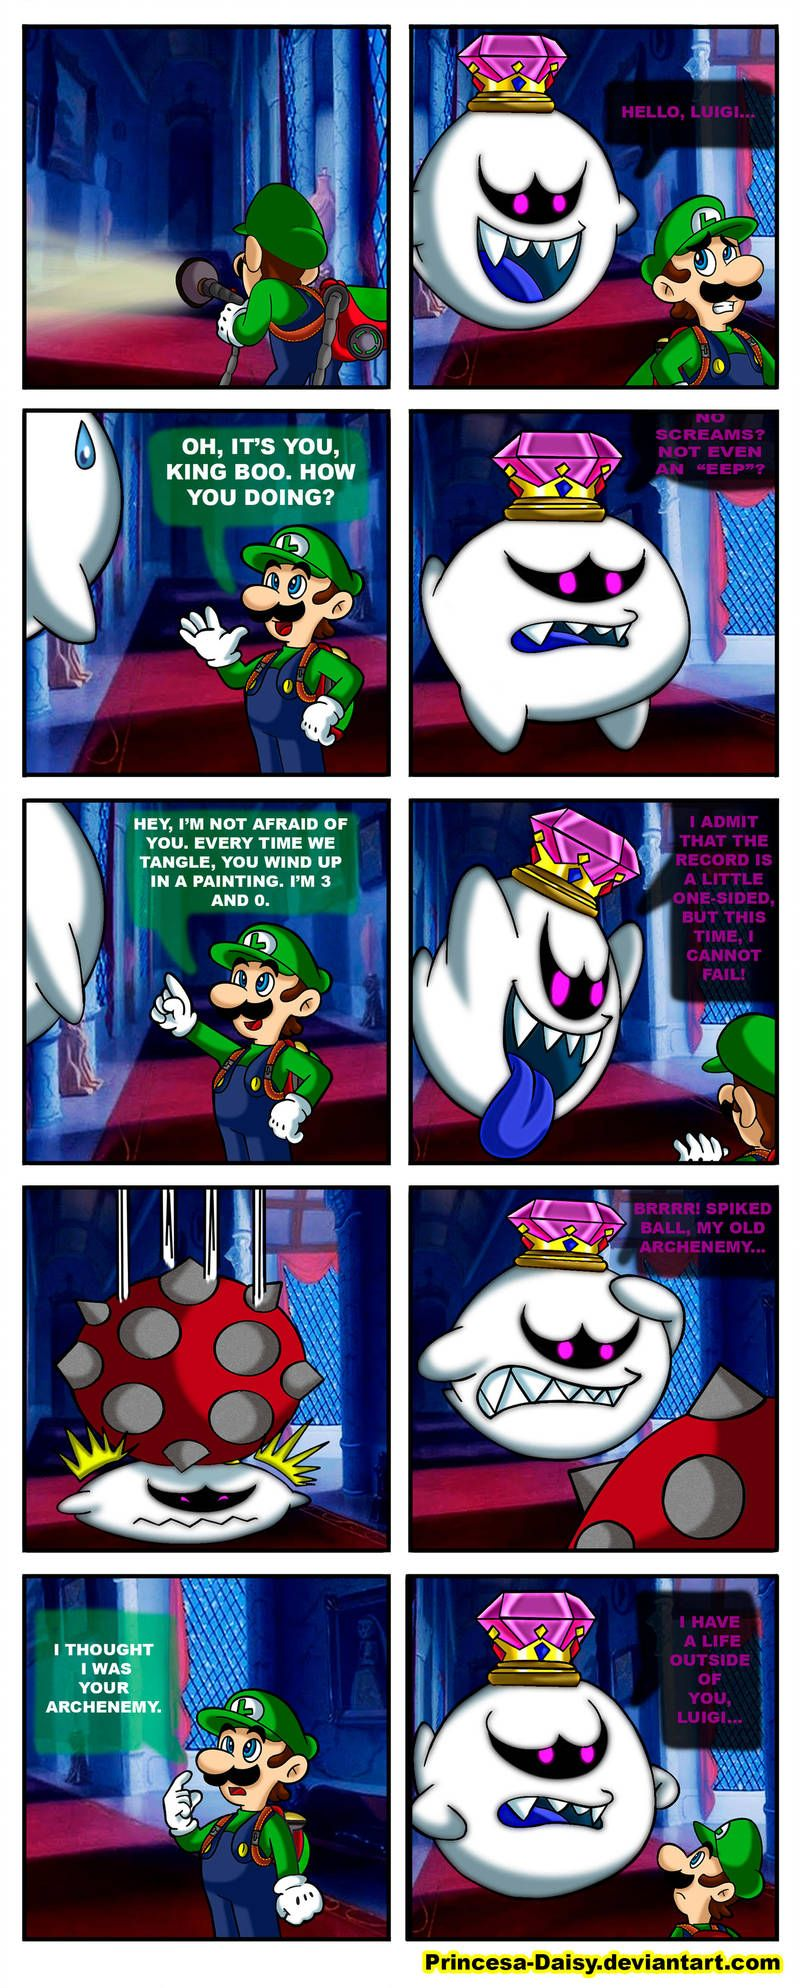 King Boo And Luigi My Old Archenemy By Princesa Daisy